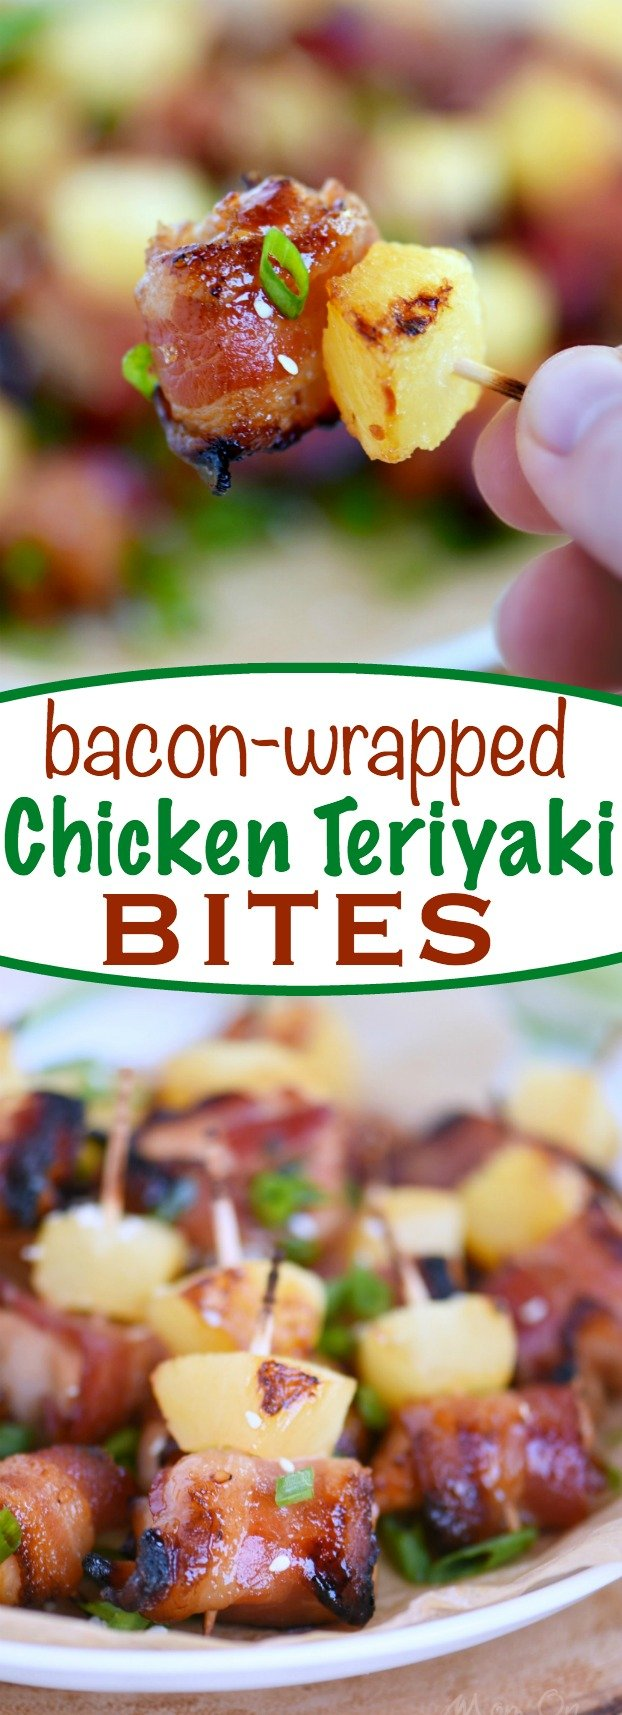 These Bacon Wrapped Chicken Teriyaki Bites are sure to be a huge hit on game day! Sweet and savory, packed full of flavor, and just 5 ingredients! Sure to be your new favorite appetizer! Score! | Mom On Timeout